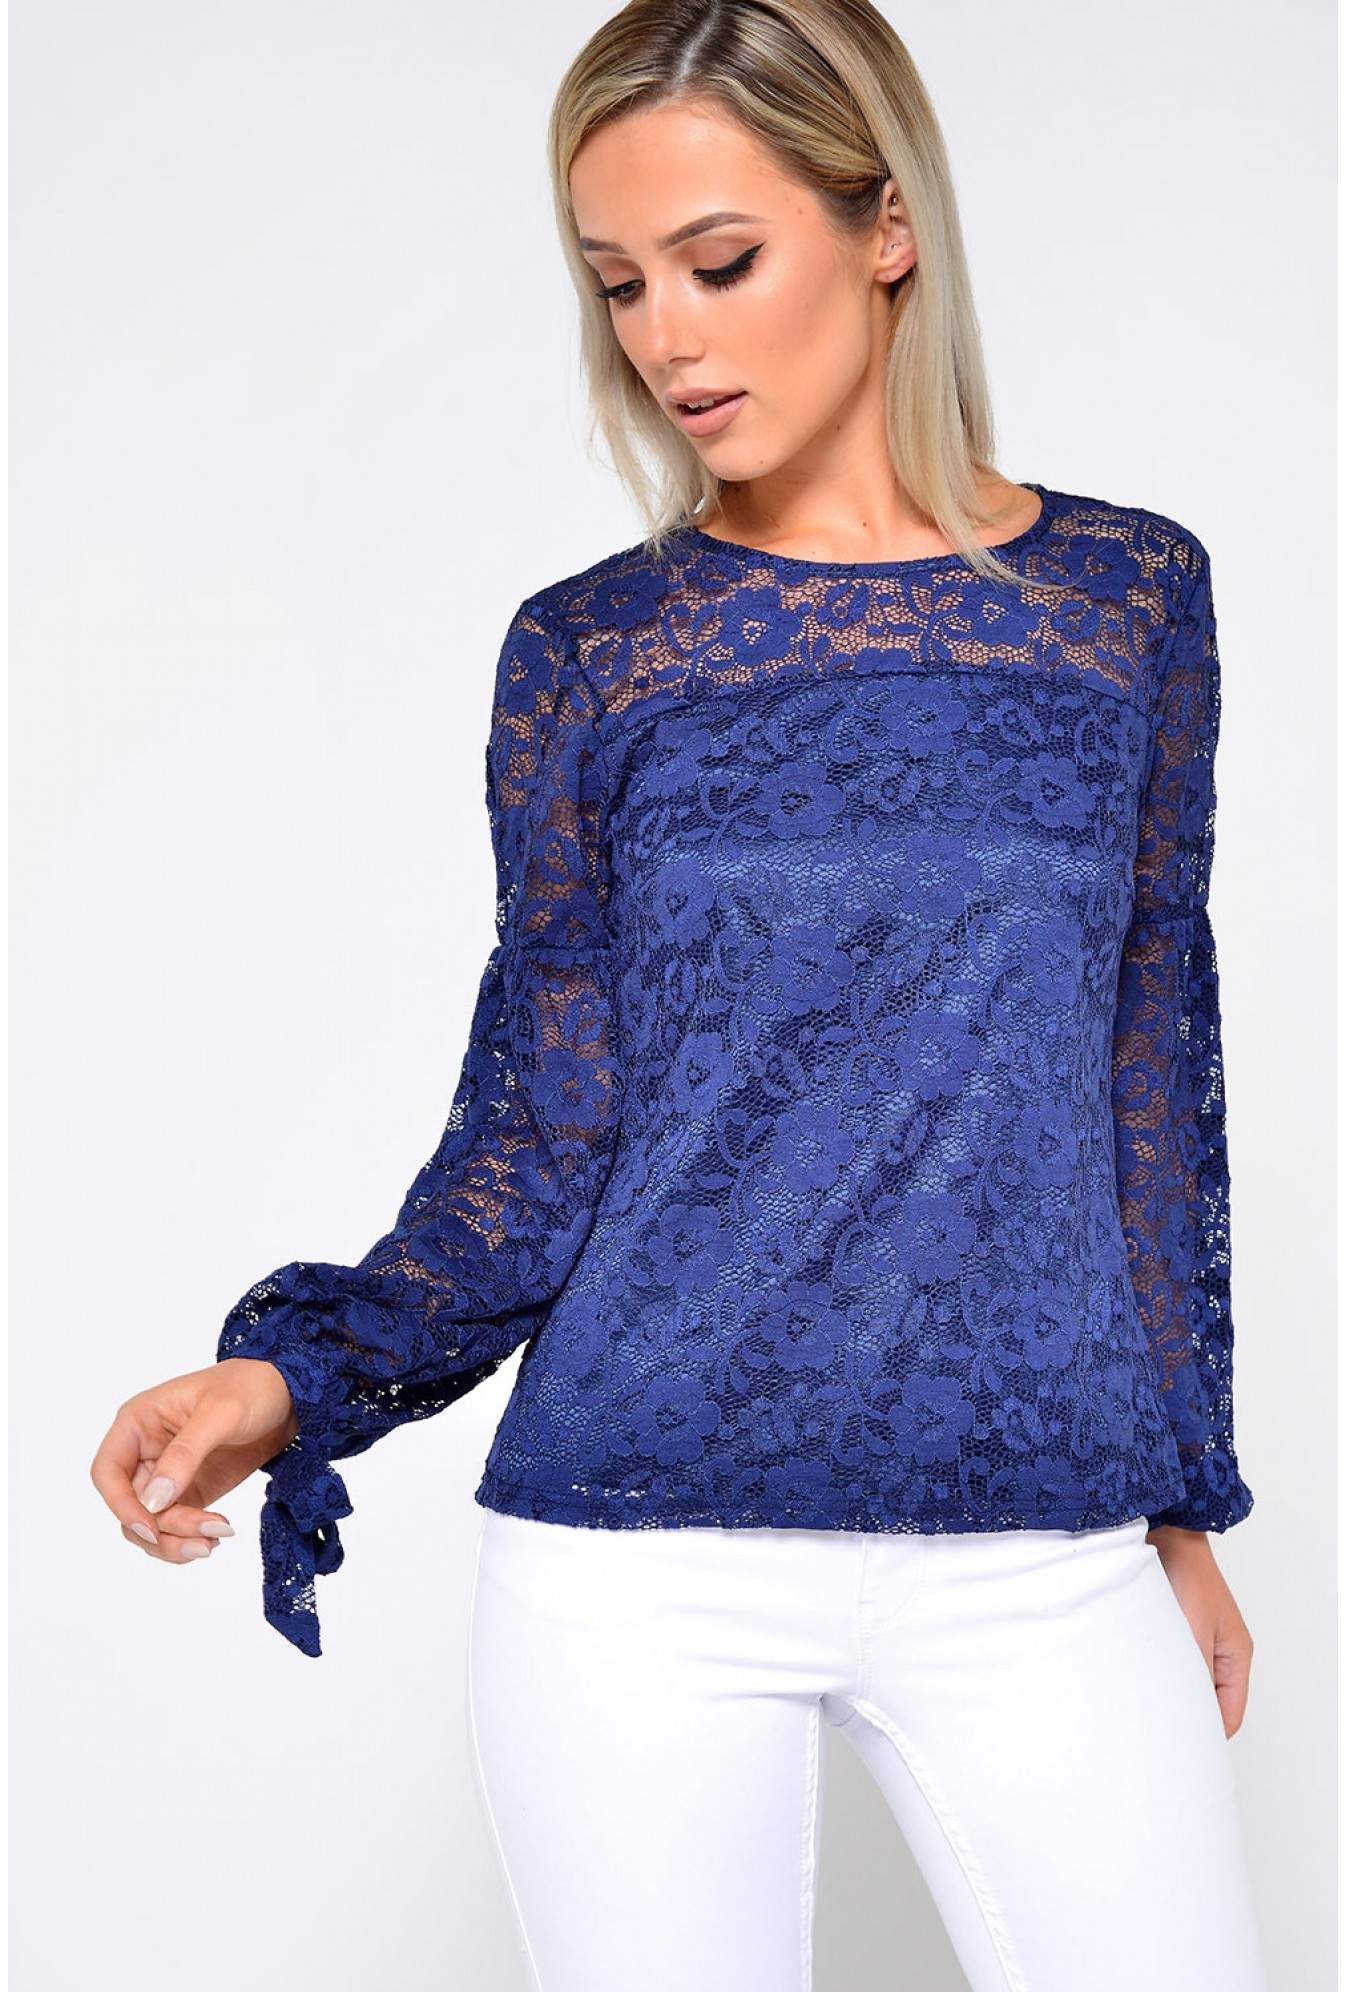 32a469adf94 Marc Angelo Pippa Long Sleeve Lace Top in Navy